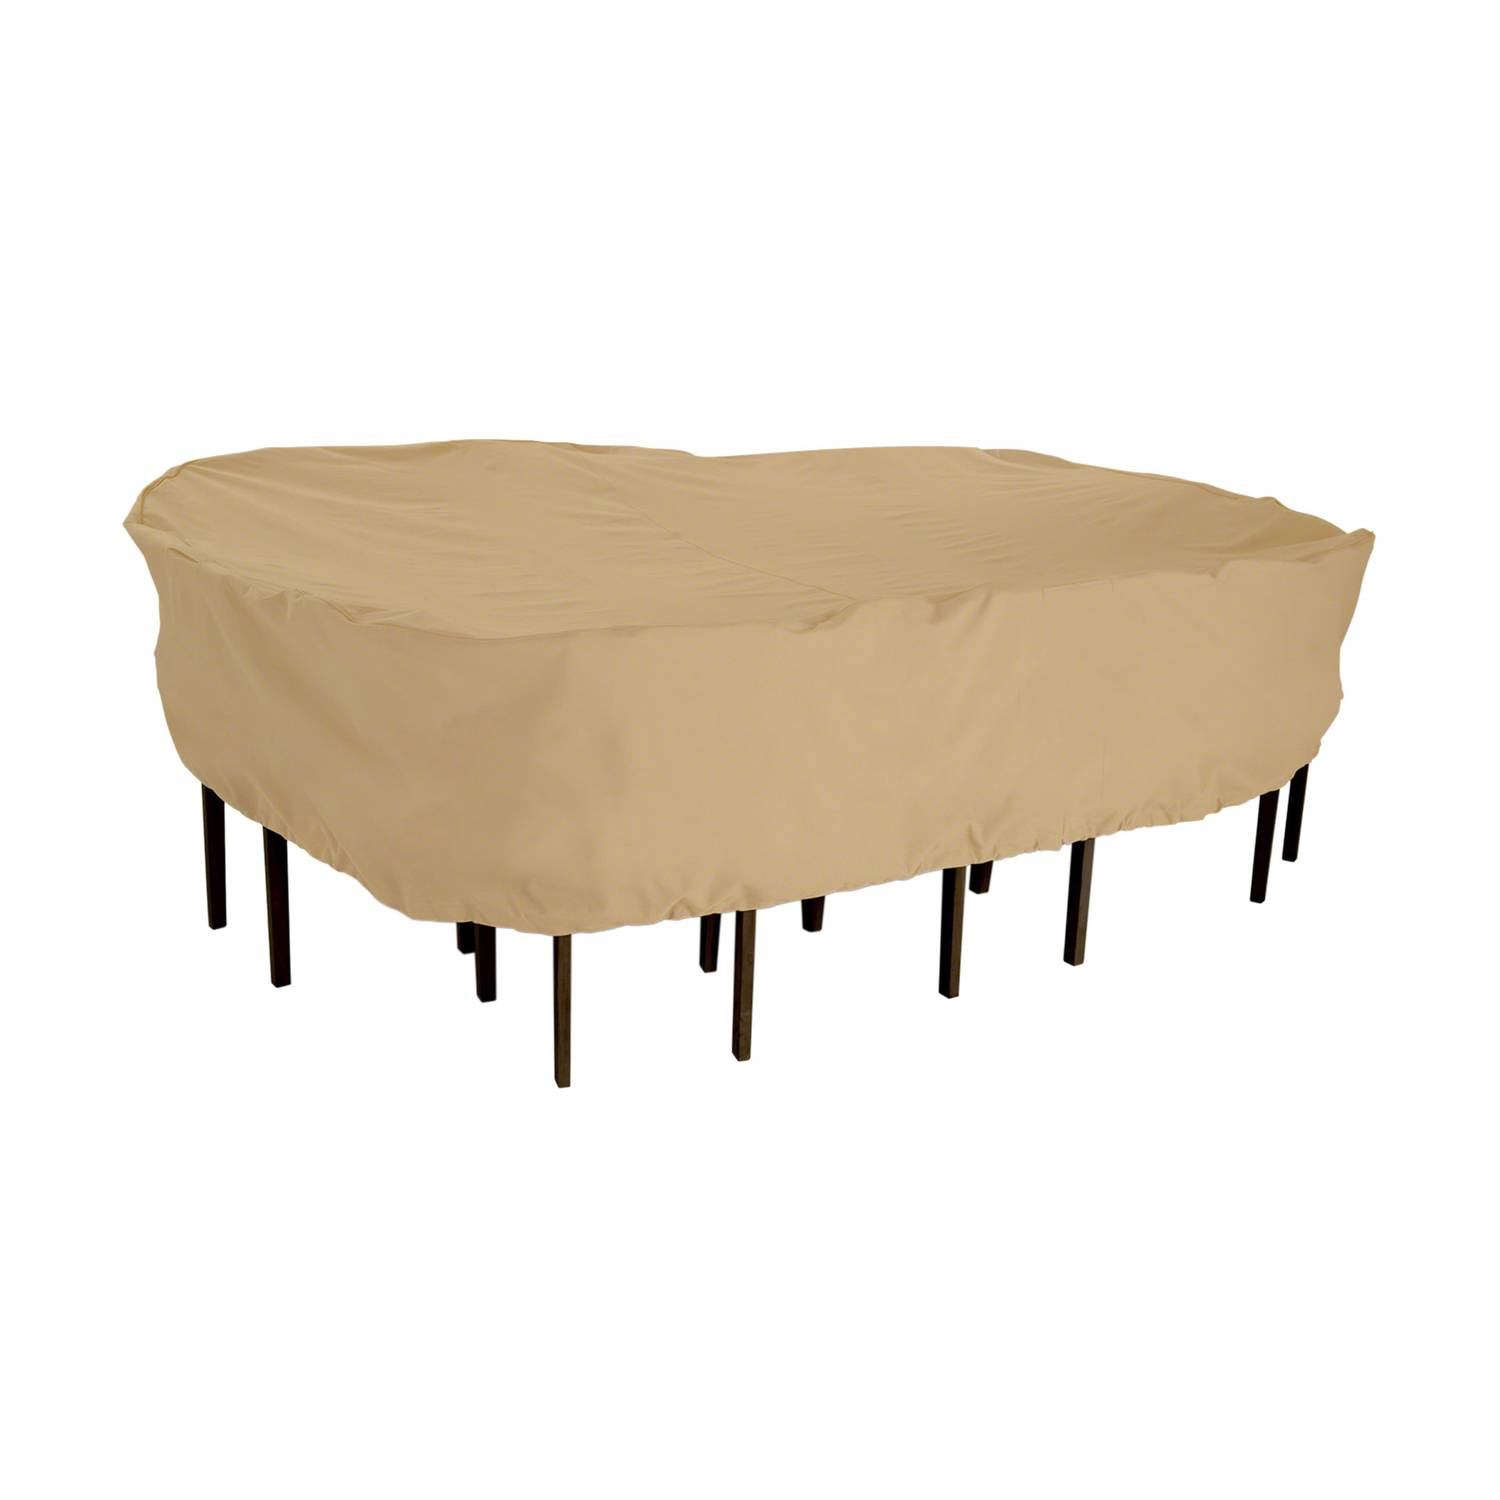 Classic Accessories 23 in. H x 82 in. W x 106 in. L Brown Polyester Dining Set Cover